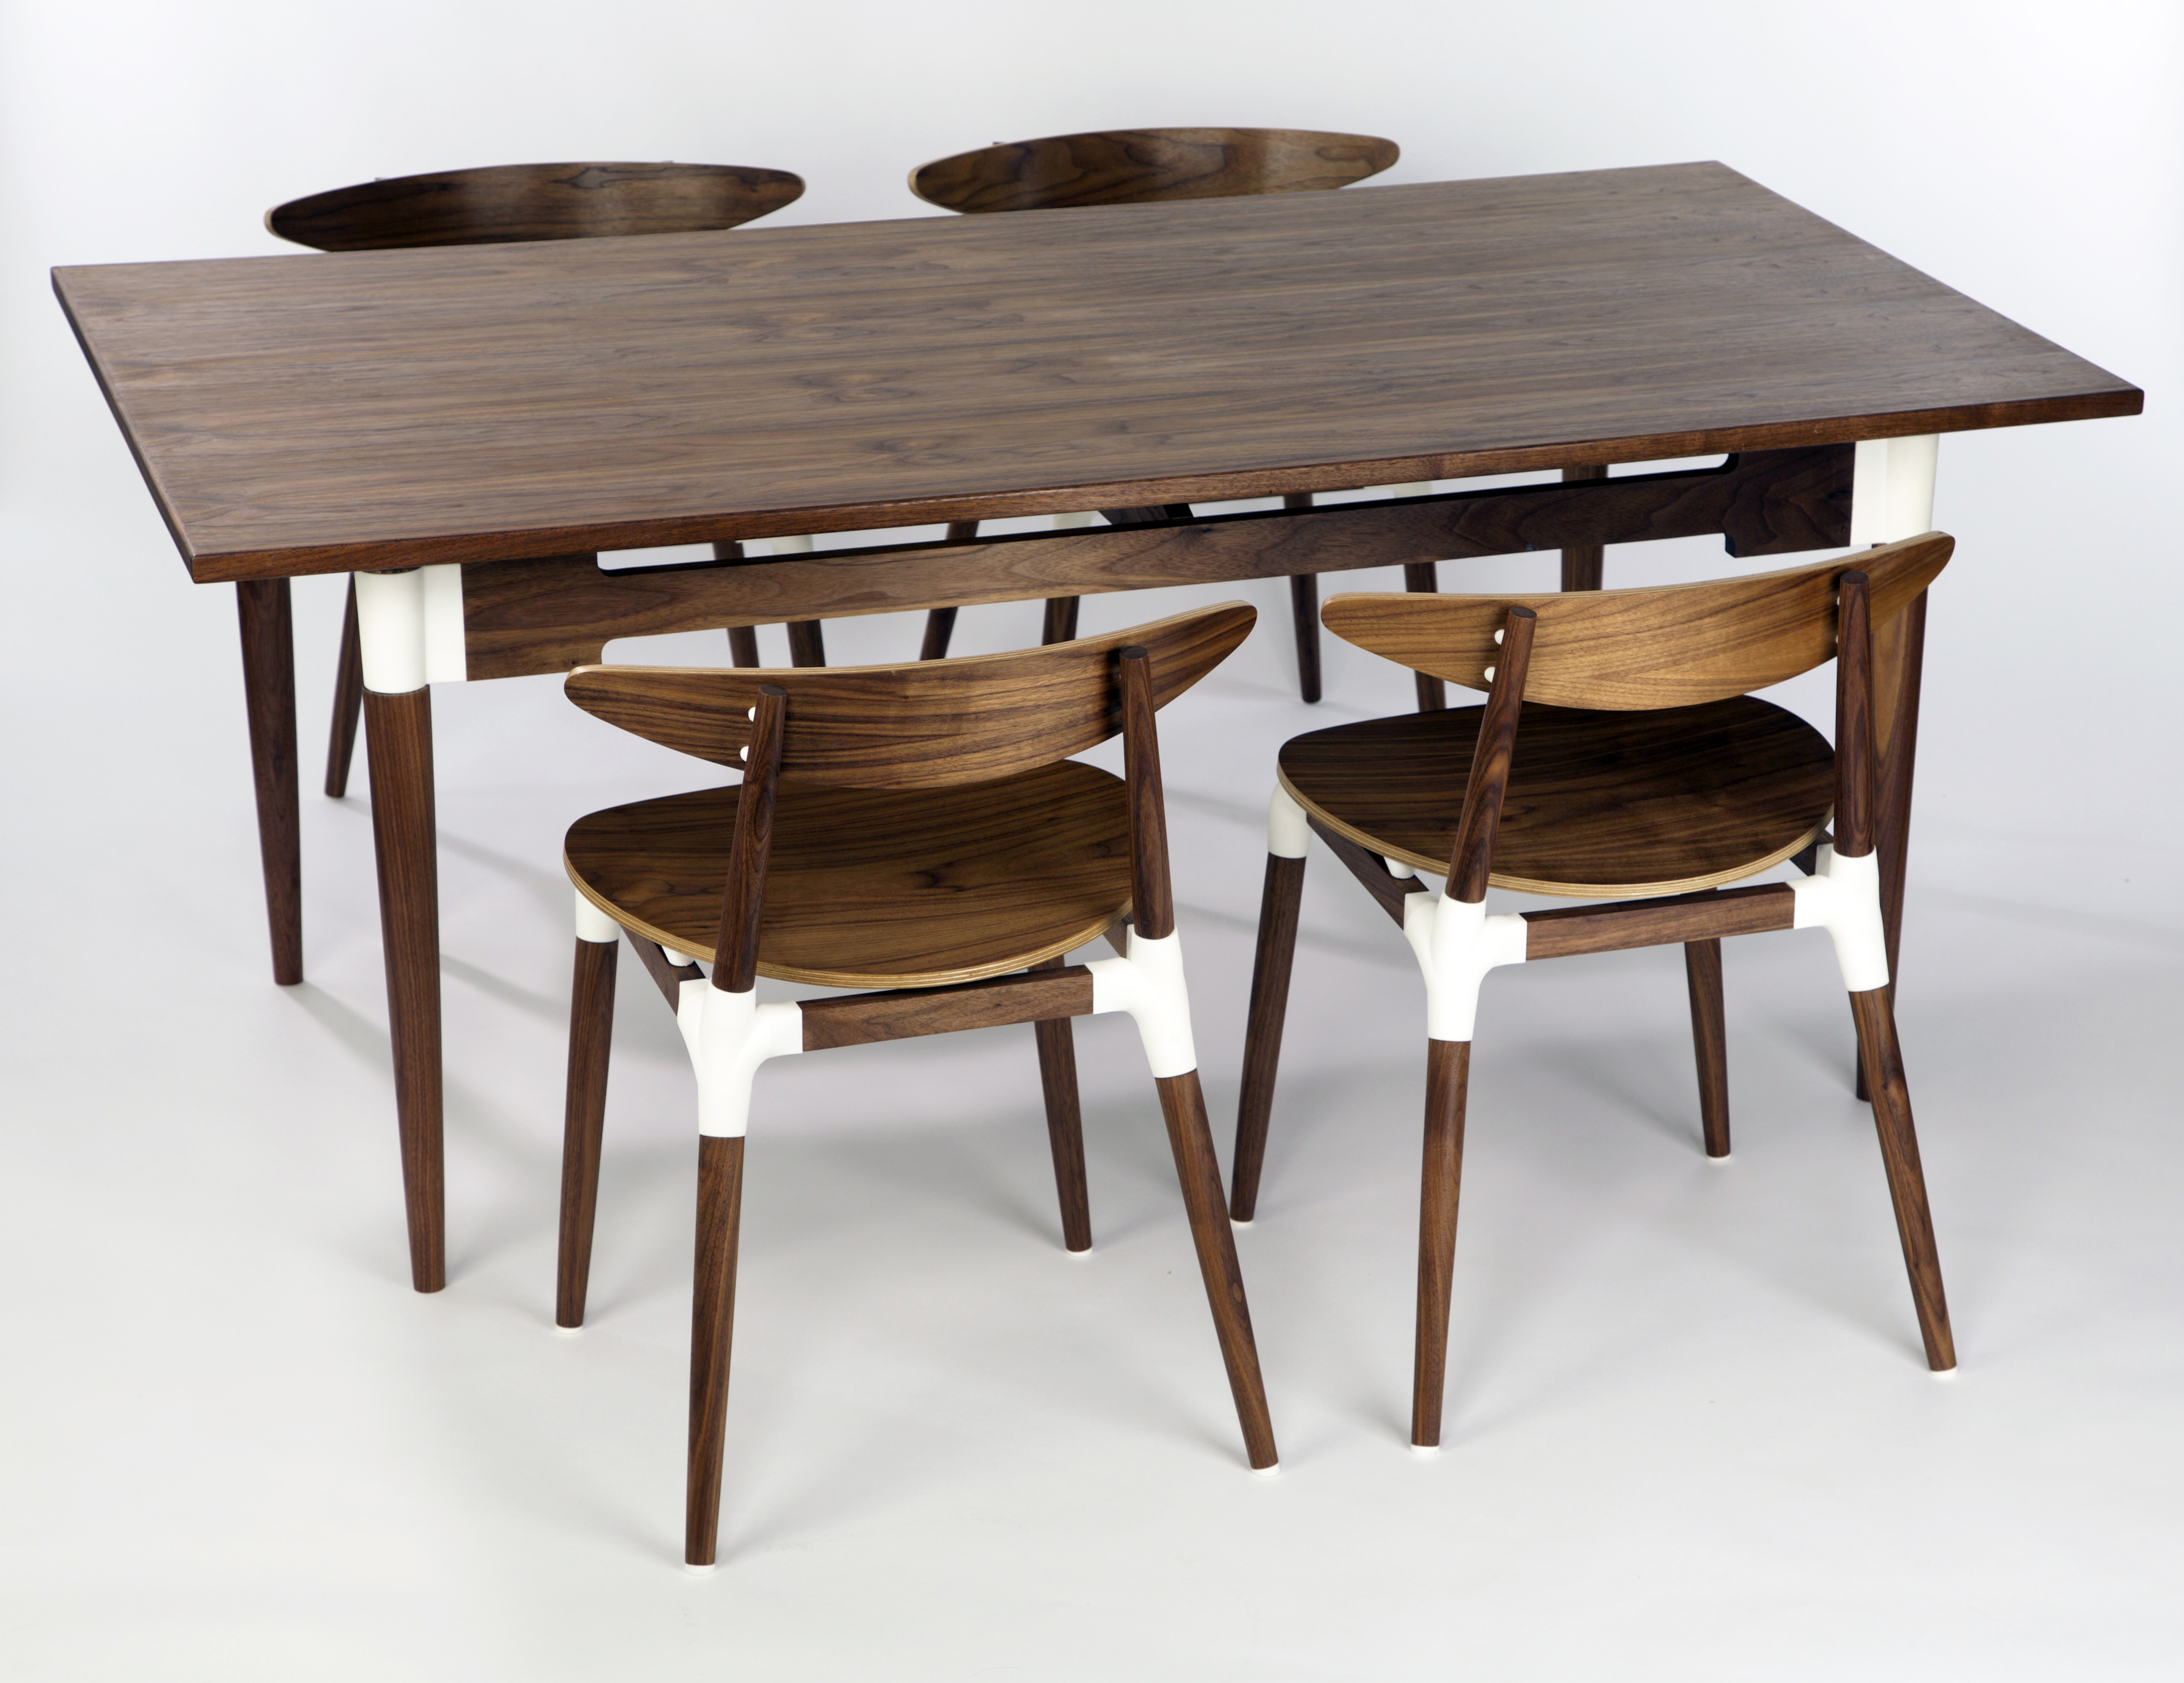 'Saul' chairs & table in natural 3D printed polyamide & walnut